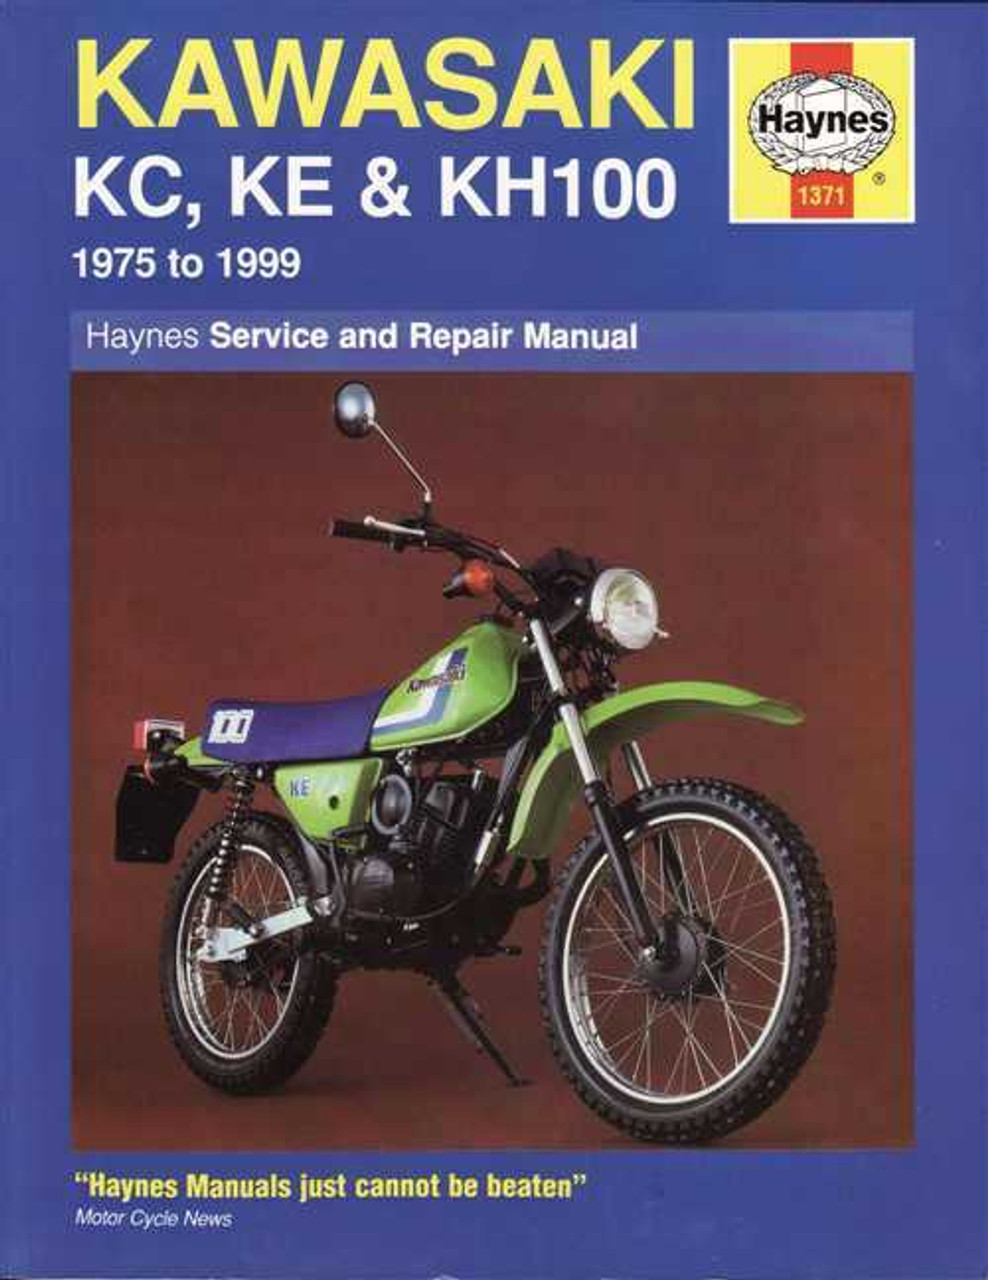 Kawasaki KC100, KE100 and KH100 1975 - 1999 Workshop Manual on